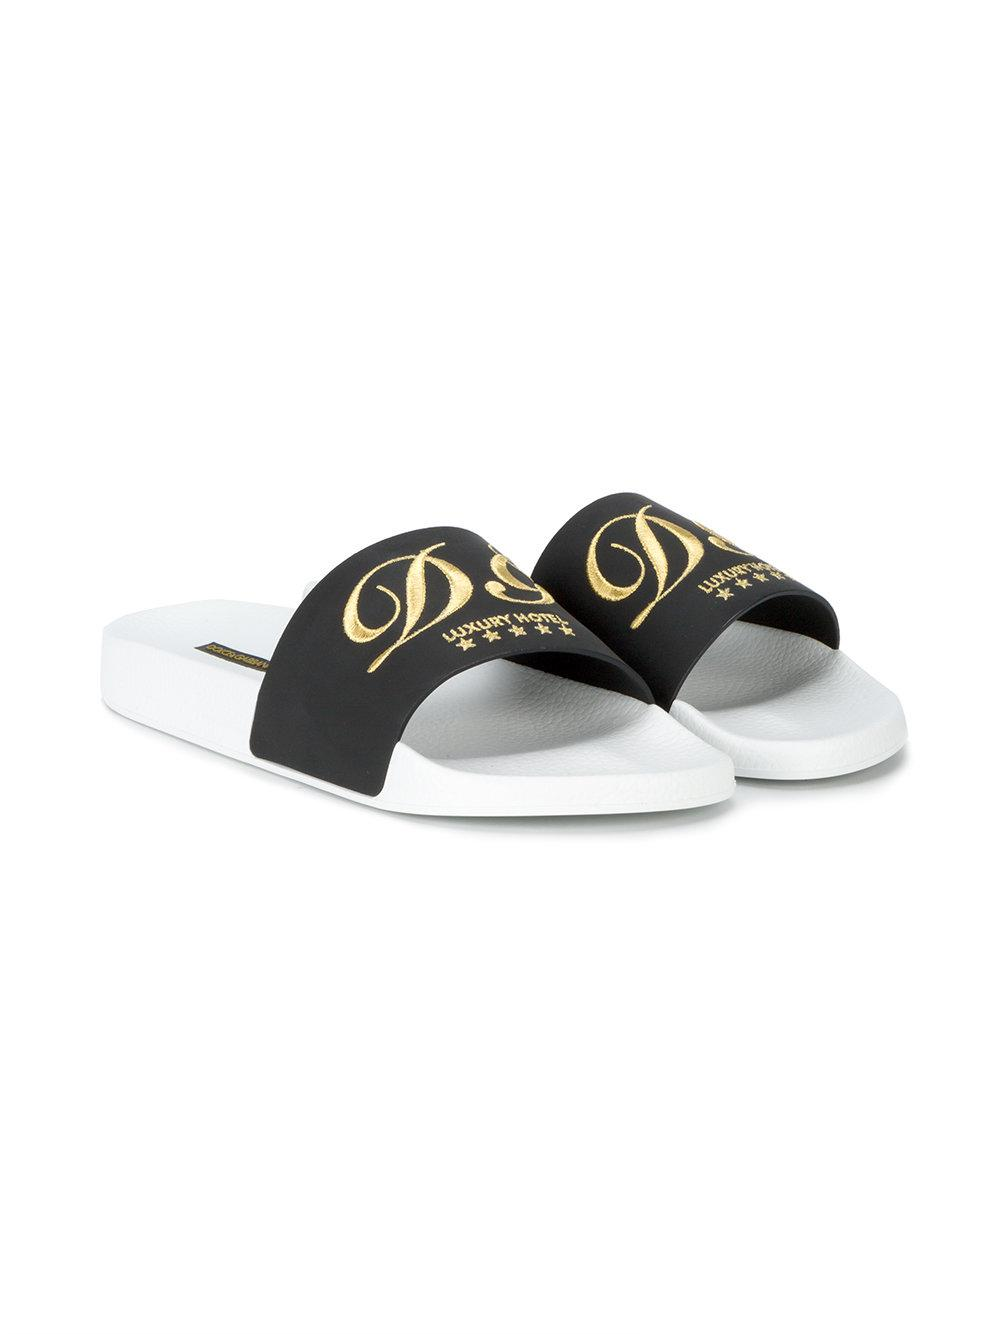 98fe9e377bb Dolce   Gabbana - Black Luxury Hotel Embroidered Slides for Men - Lyst.  View fullscreen